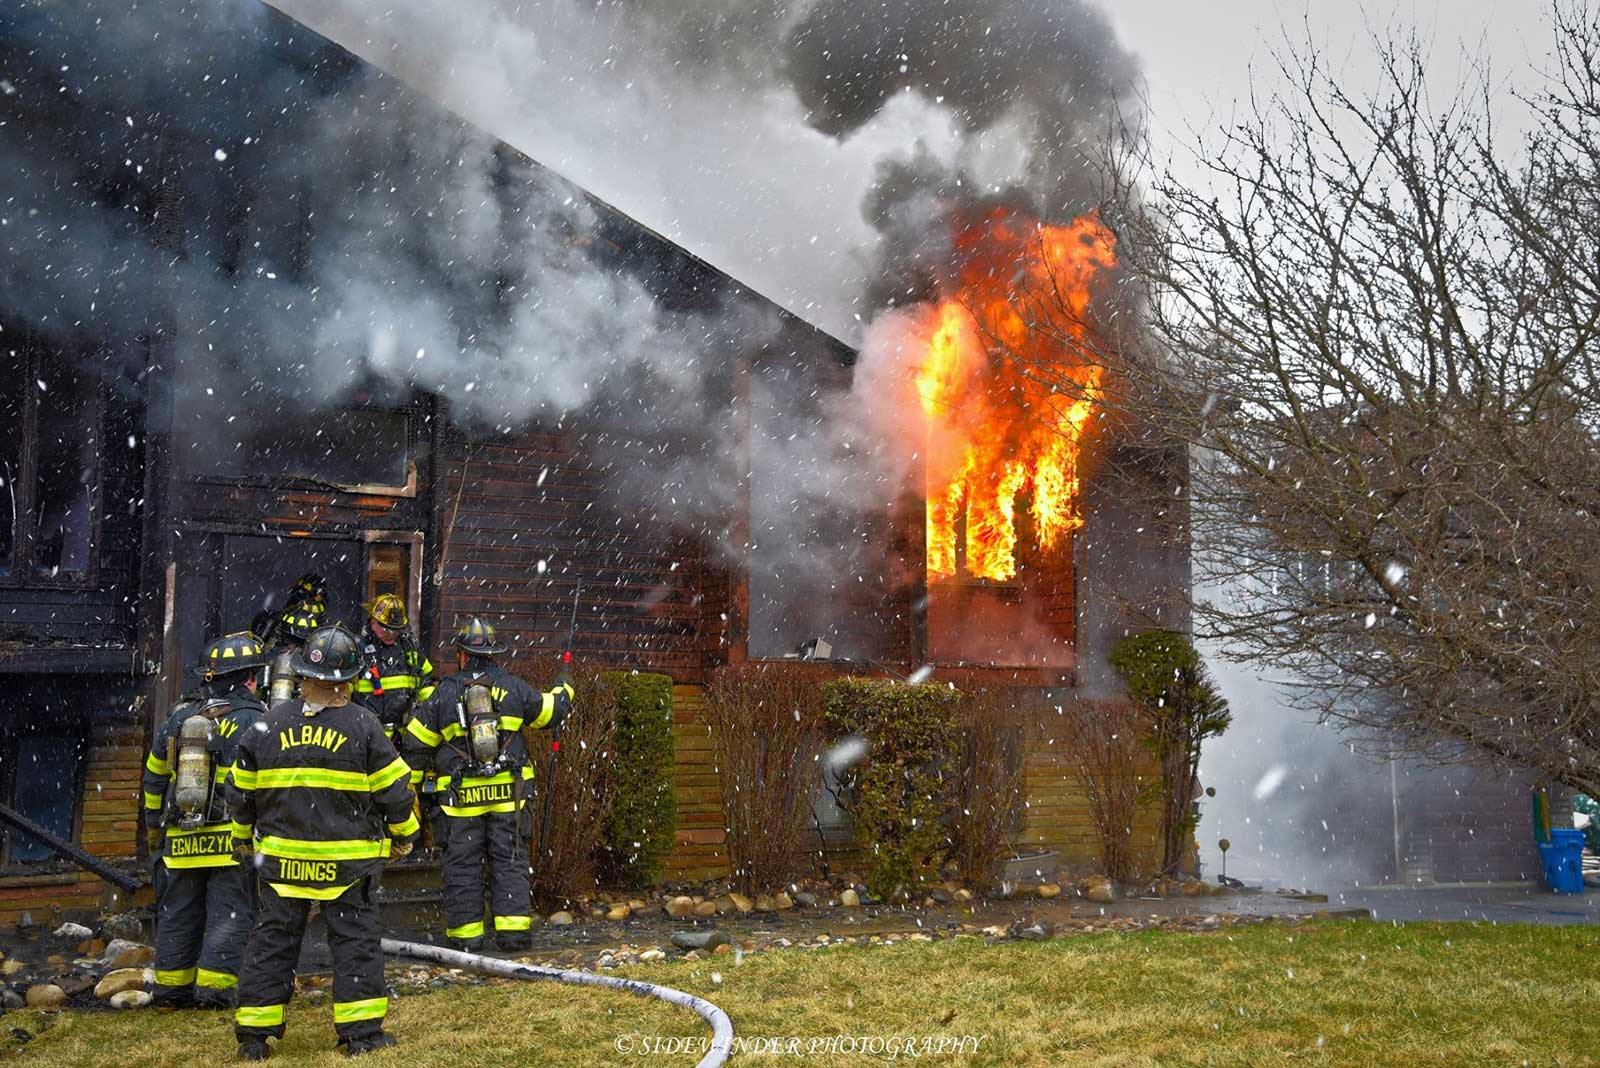 Fire pours from a window as firefighters are poised outside the structure with hoselines